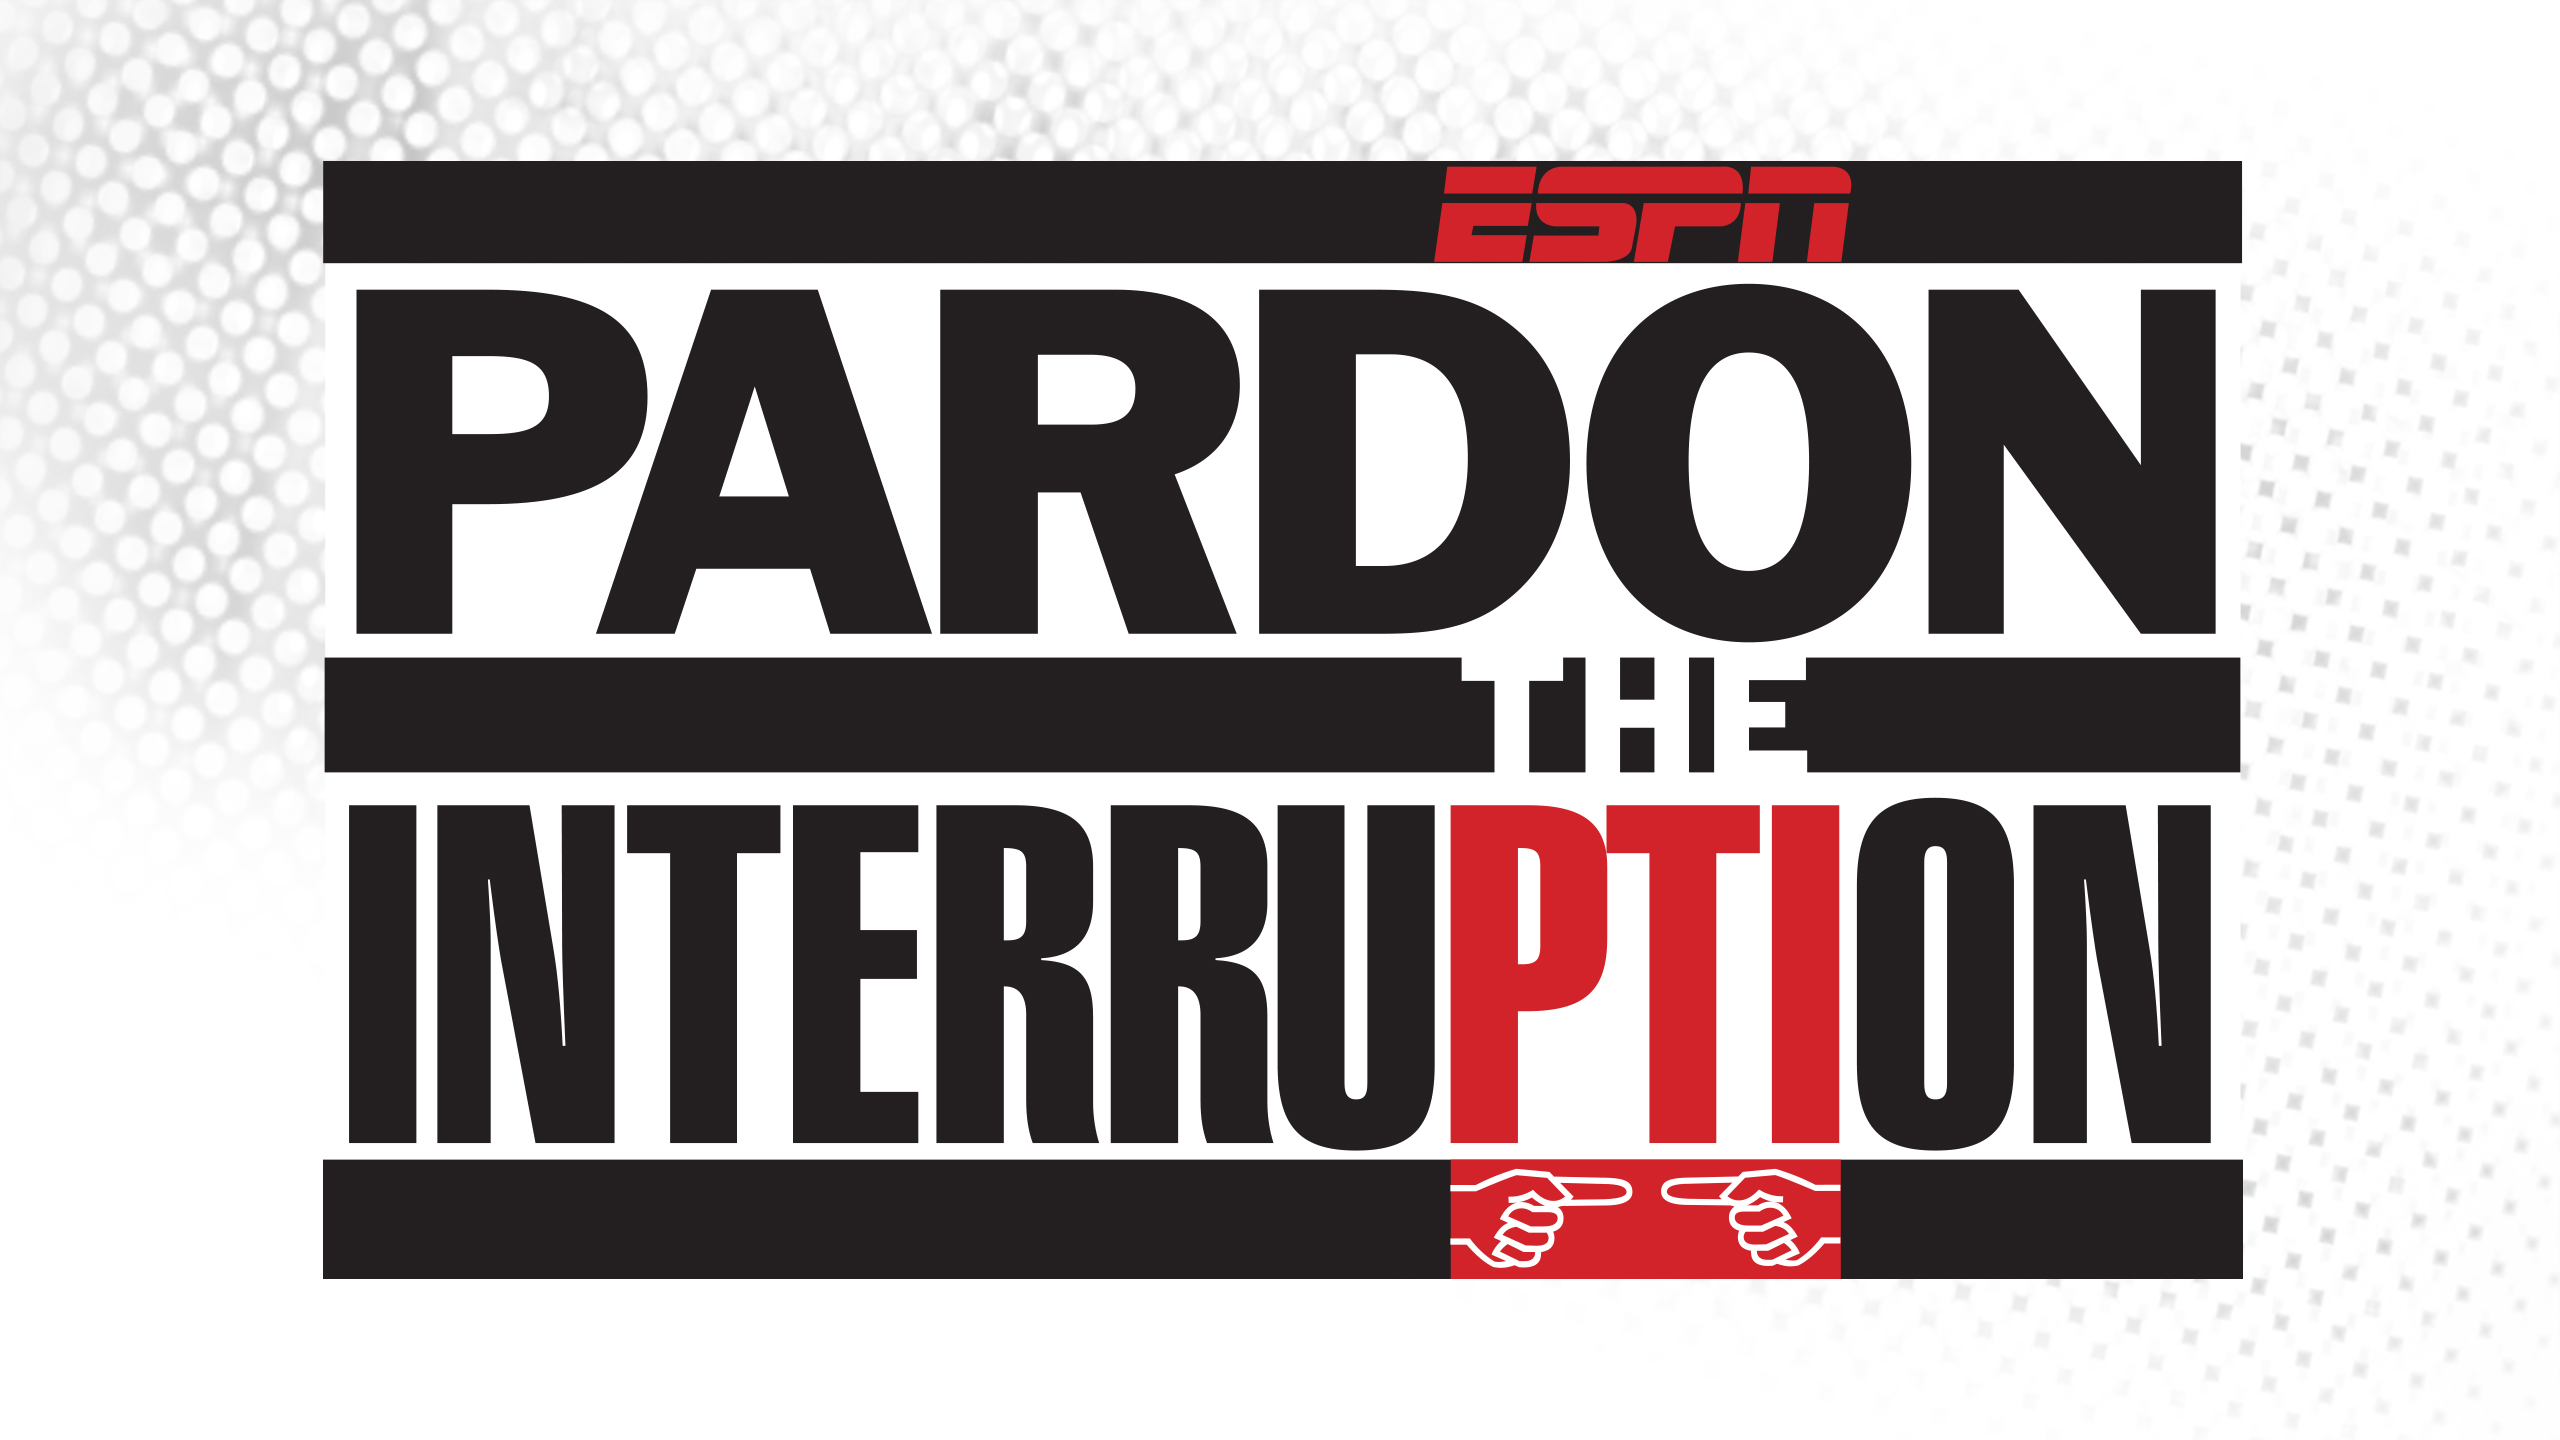 Wed, 9/12 - Pardon The Interruption